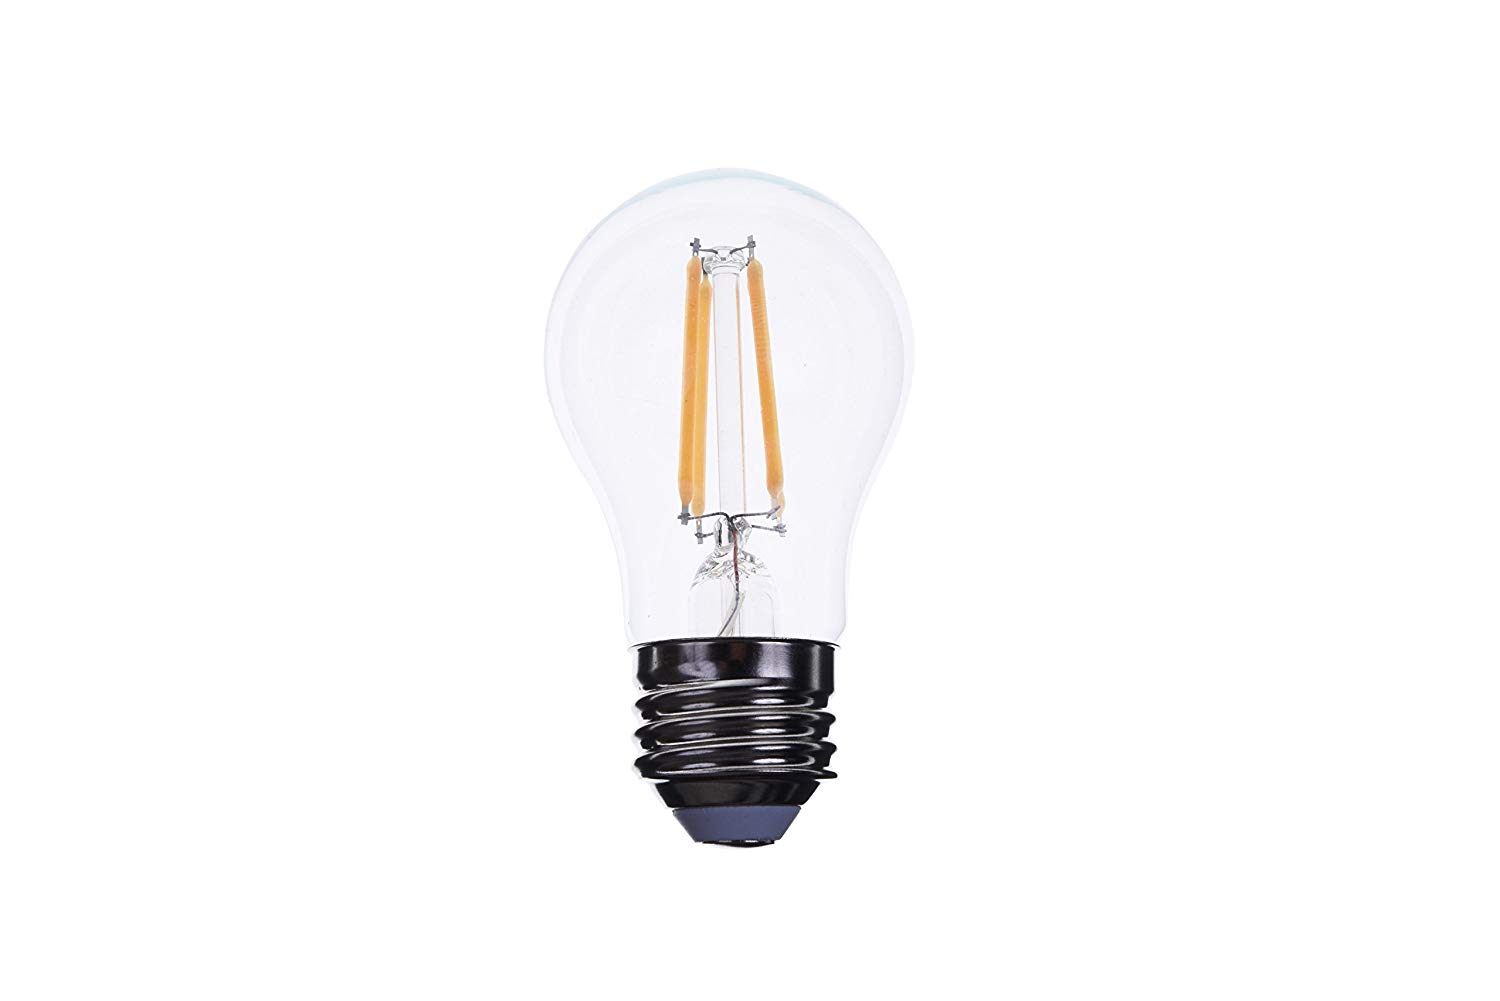 Goodlite G-19754 5W A15 LED Light 500 Lumens 60W Equivalent E26 Base 3000K Warm White Dimmable Clear,Appliance Bulb, Warm White 3000K